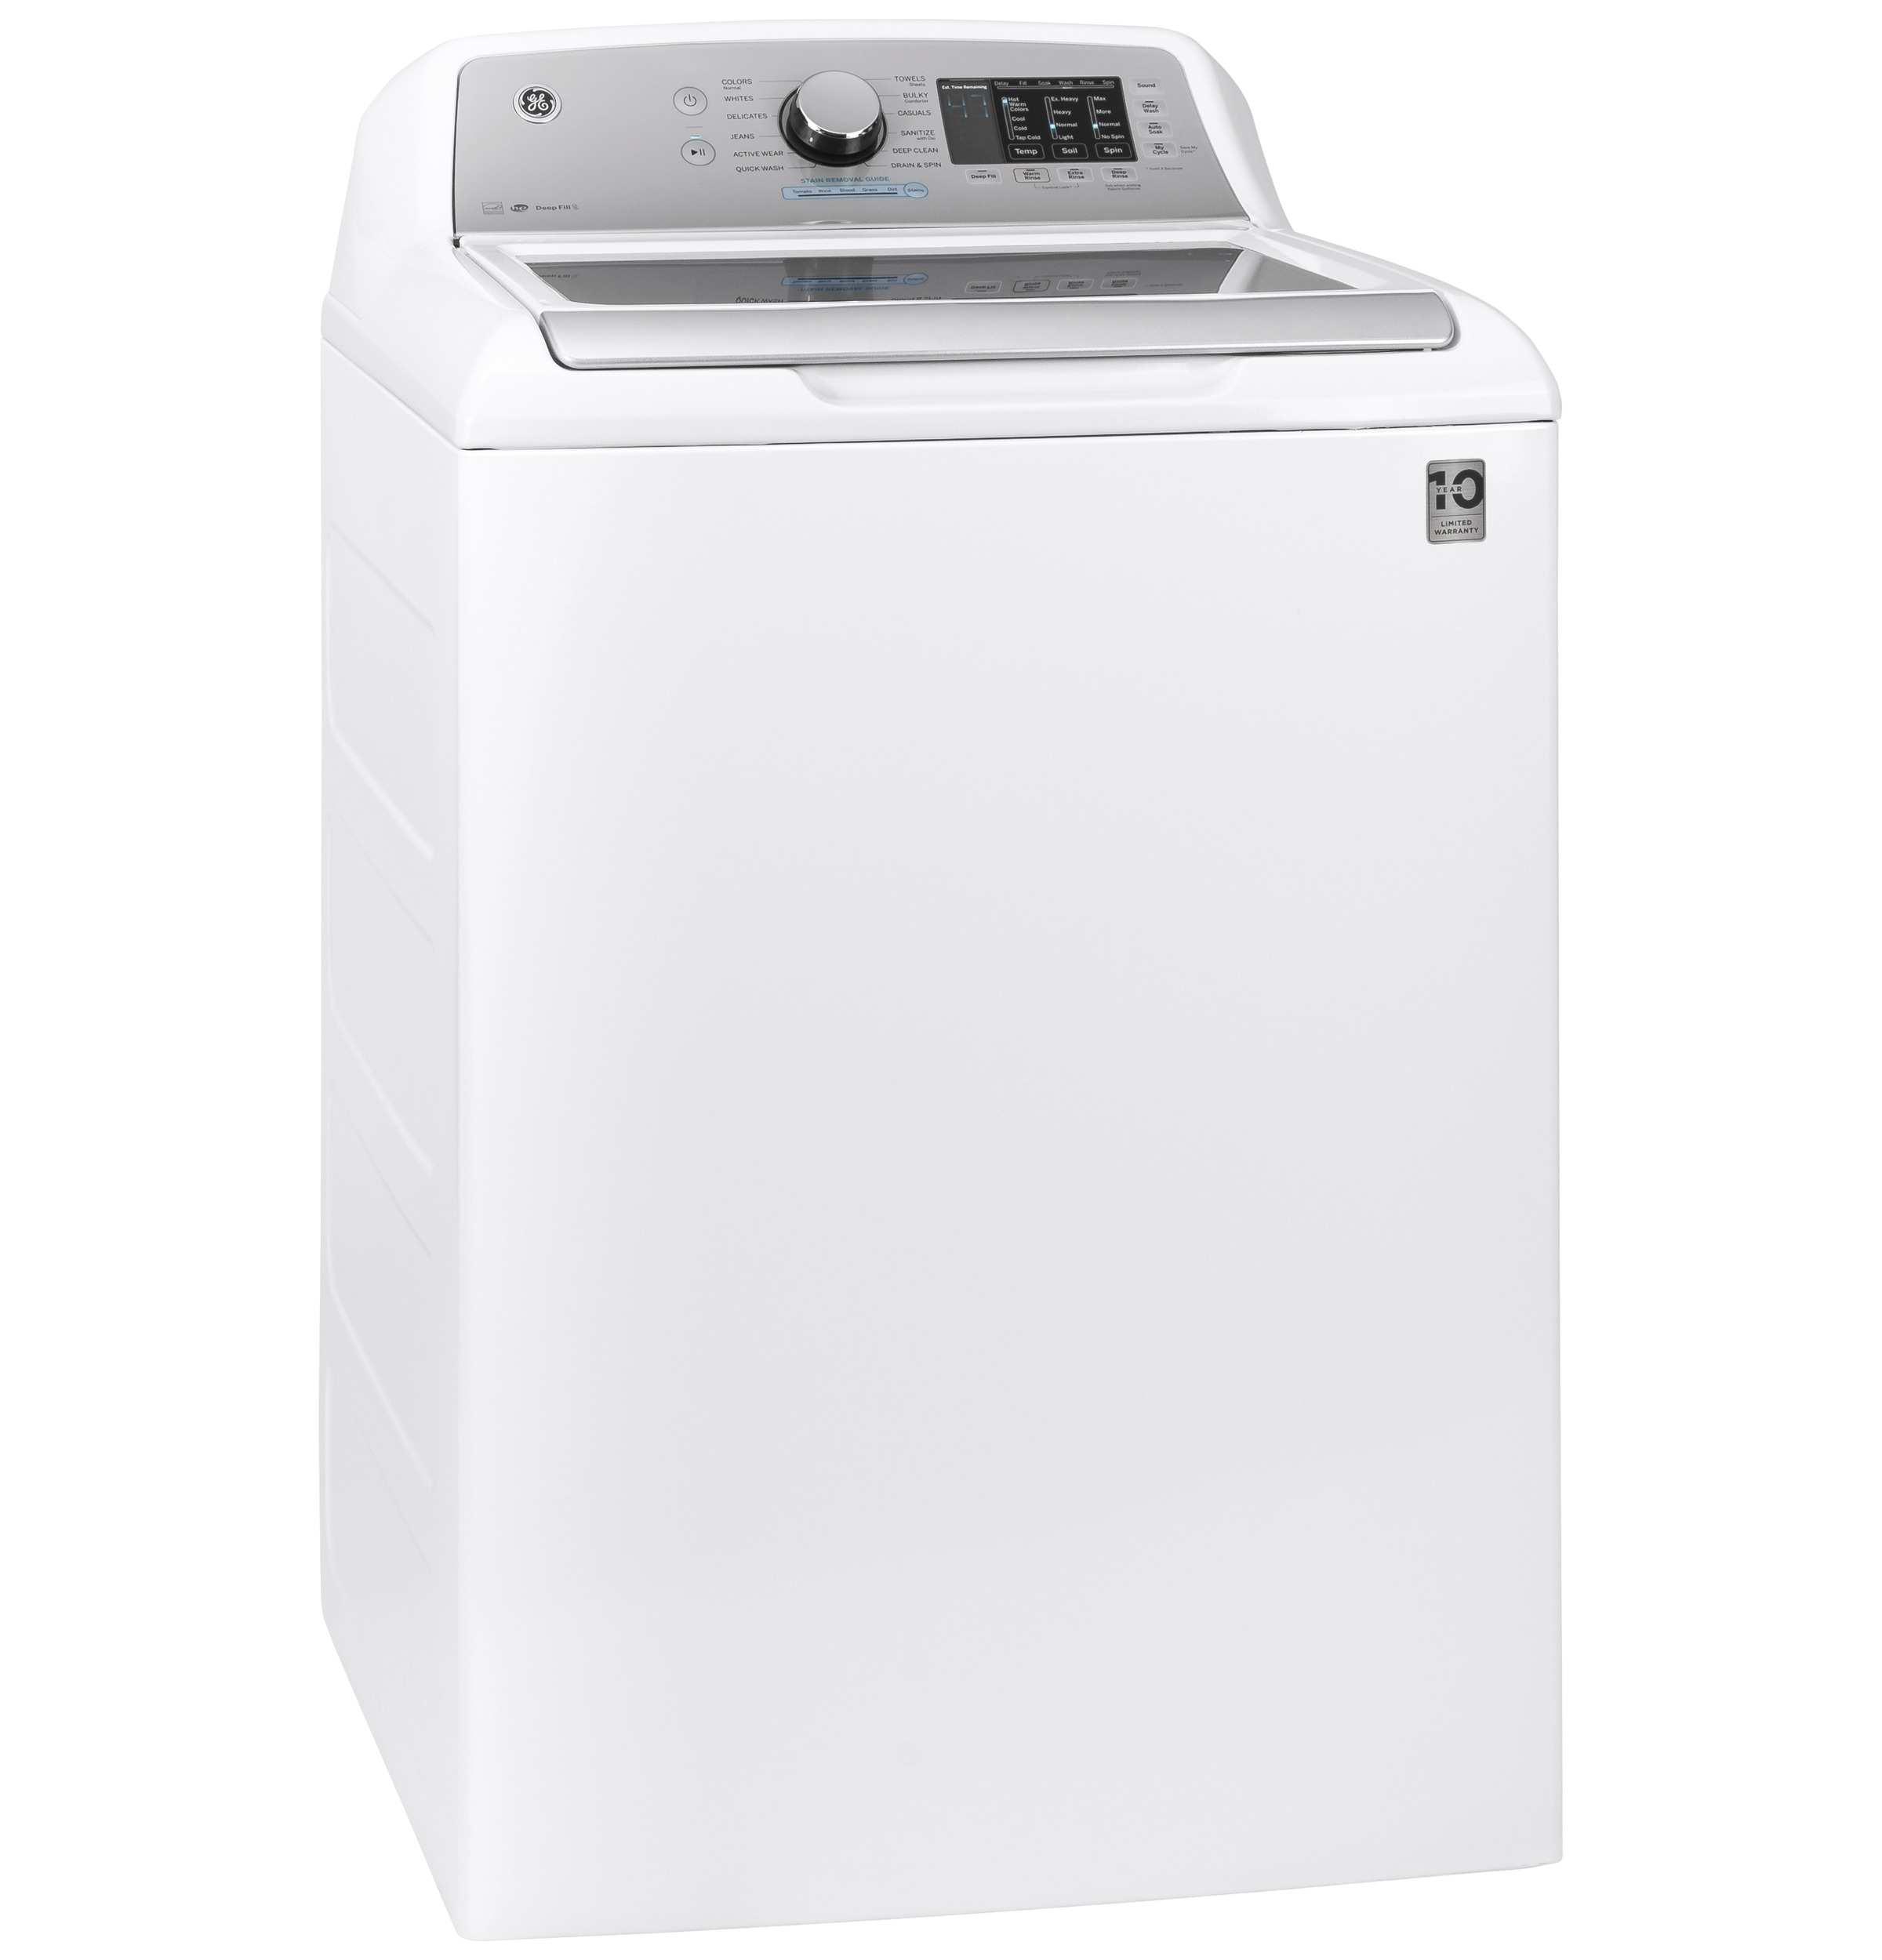 Model: GTW725BSNWS | GE GE® 4.6  cu. ft. Capacity Washer with Sanitize w/Oxi and FlexDispense™